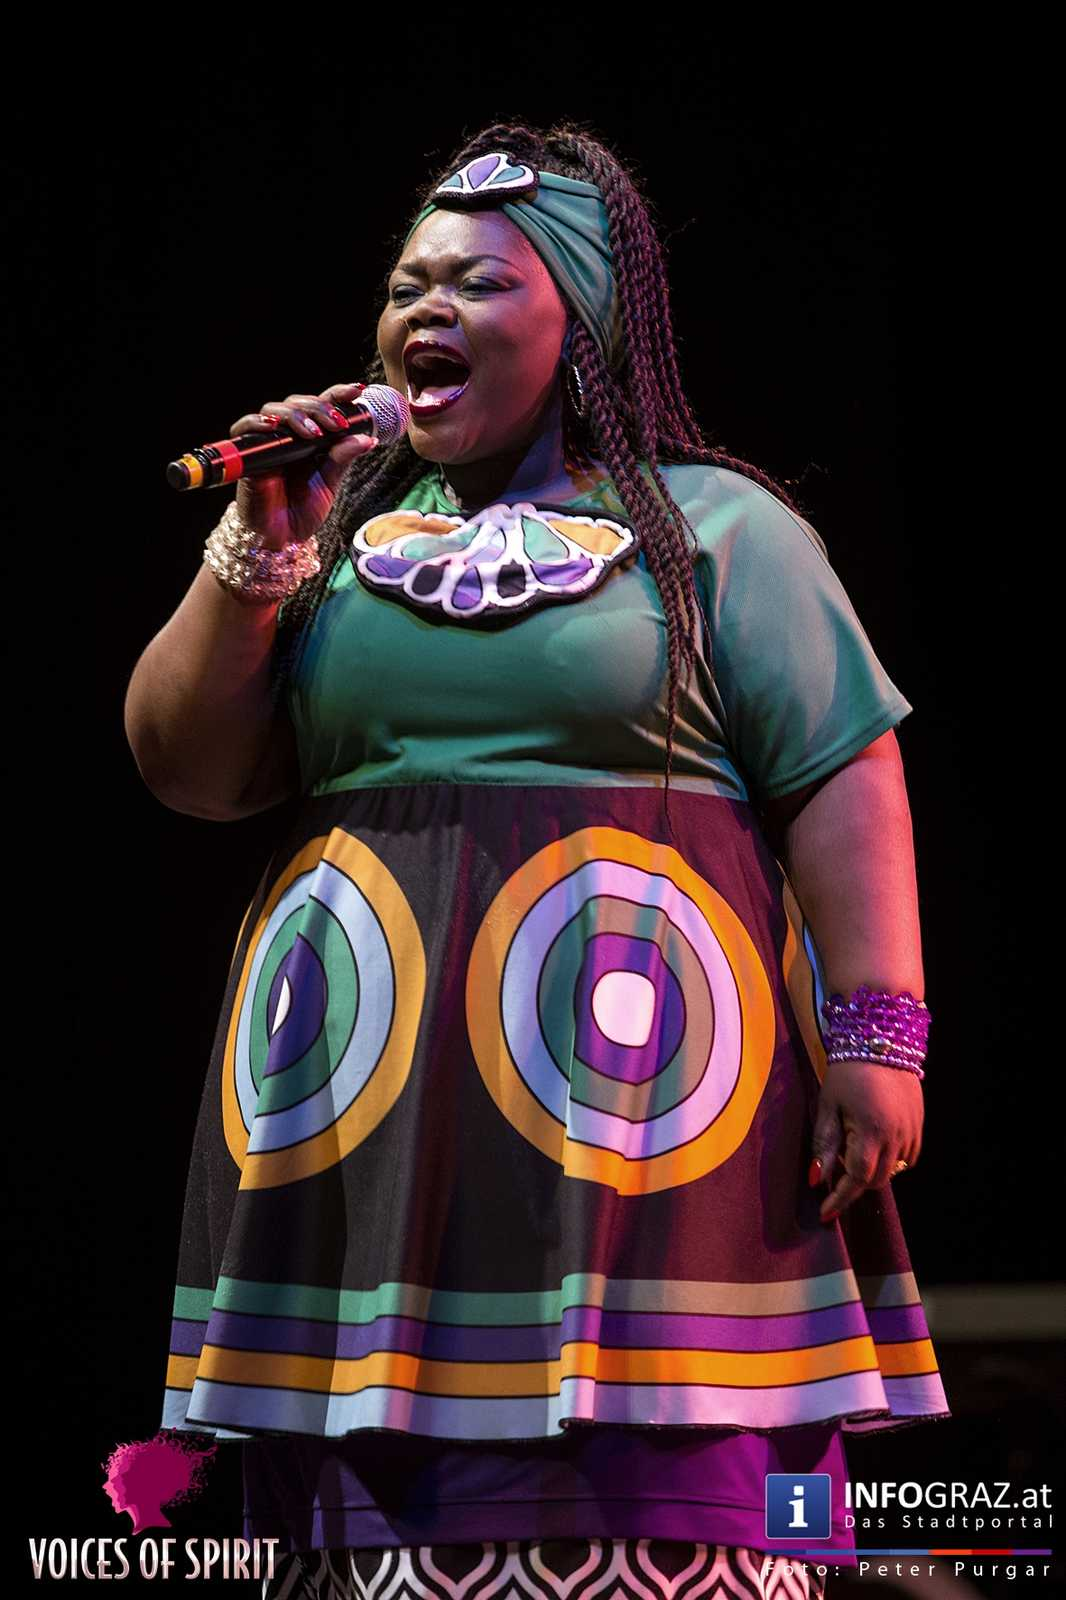 soweto gospel choir internationales chorfestival statdthalle graz voices of spirit eroeffnung festivals 2016 017